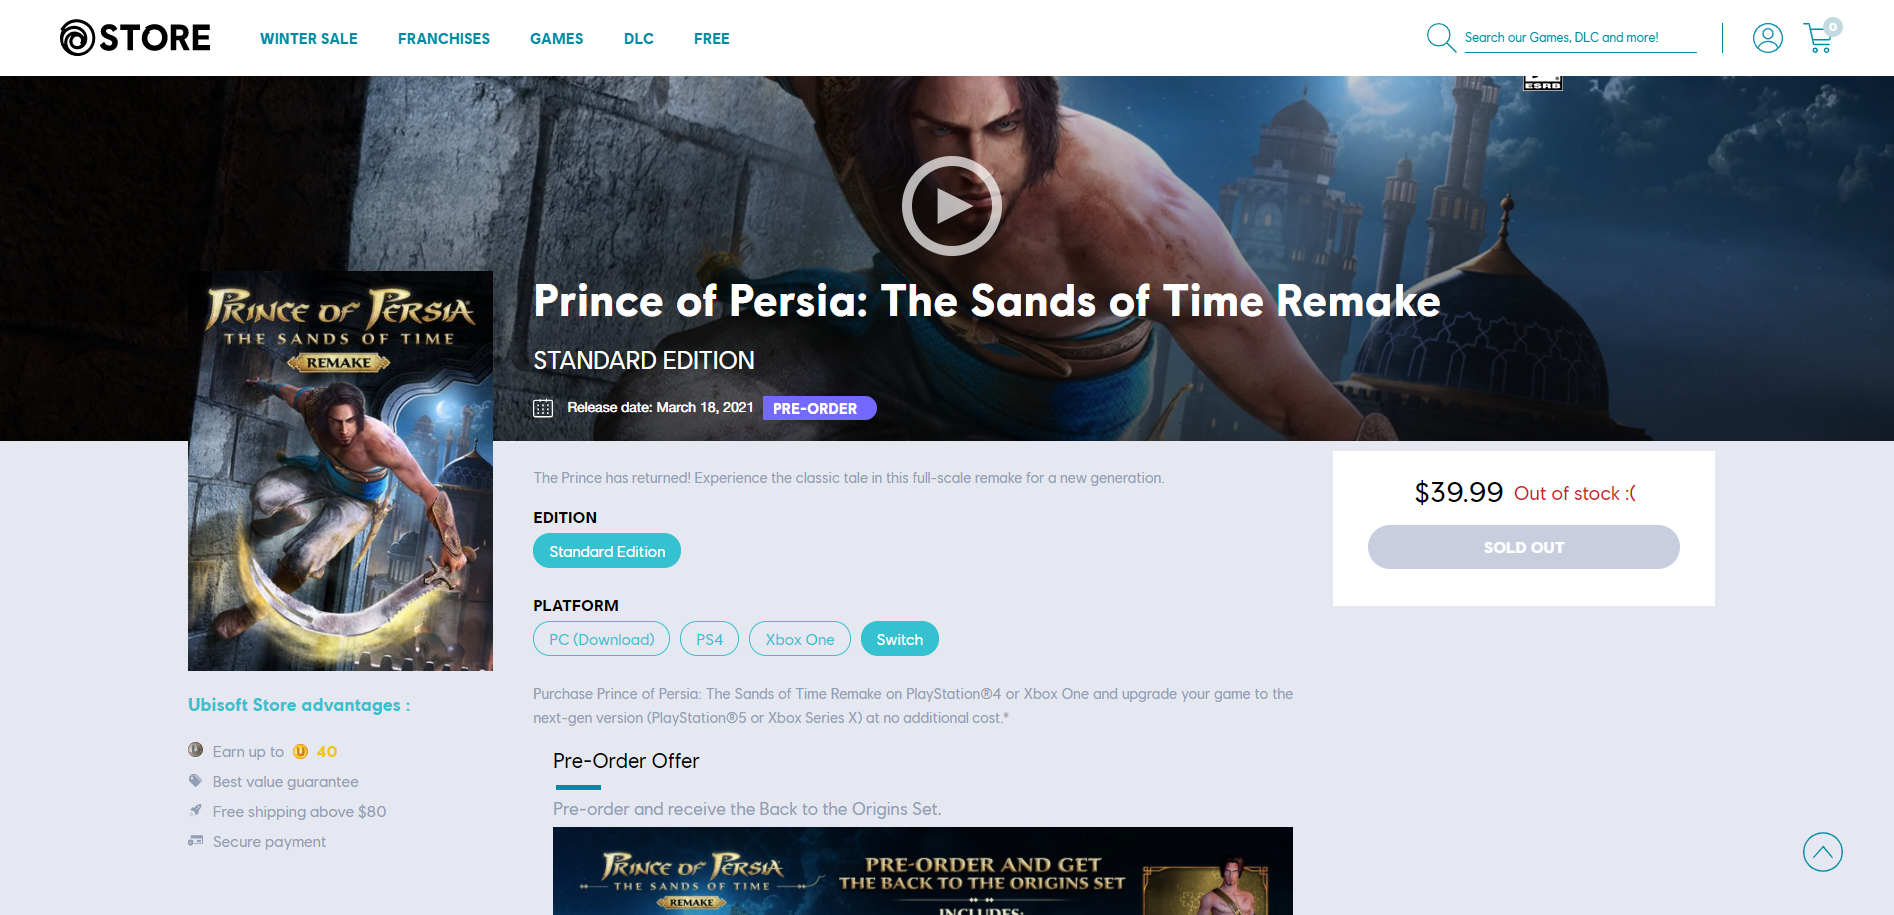 Prince of Persia: The Sands of Time Remake Switch